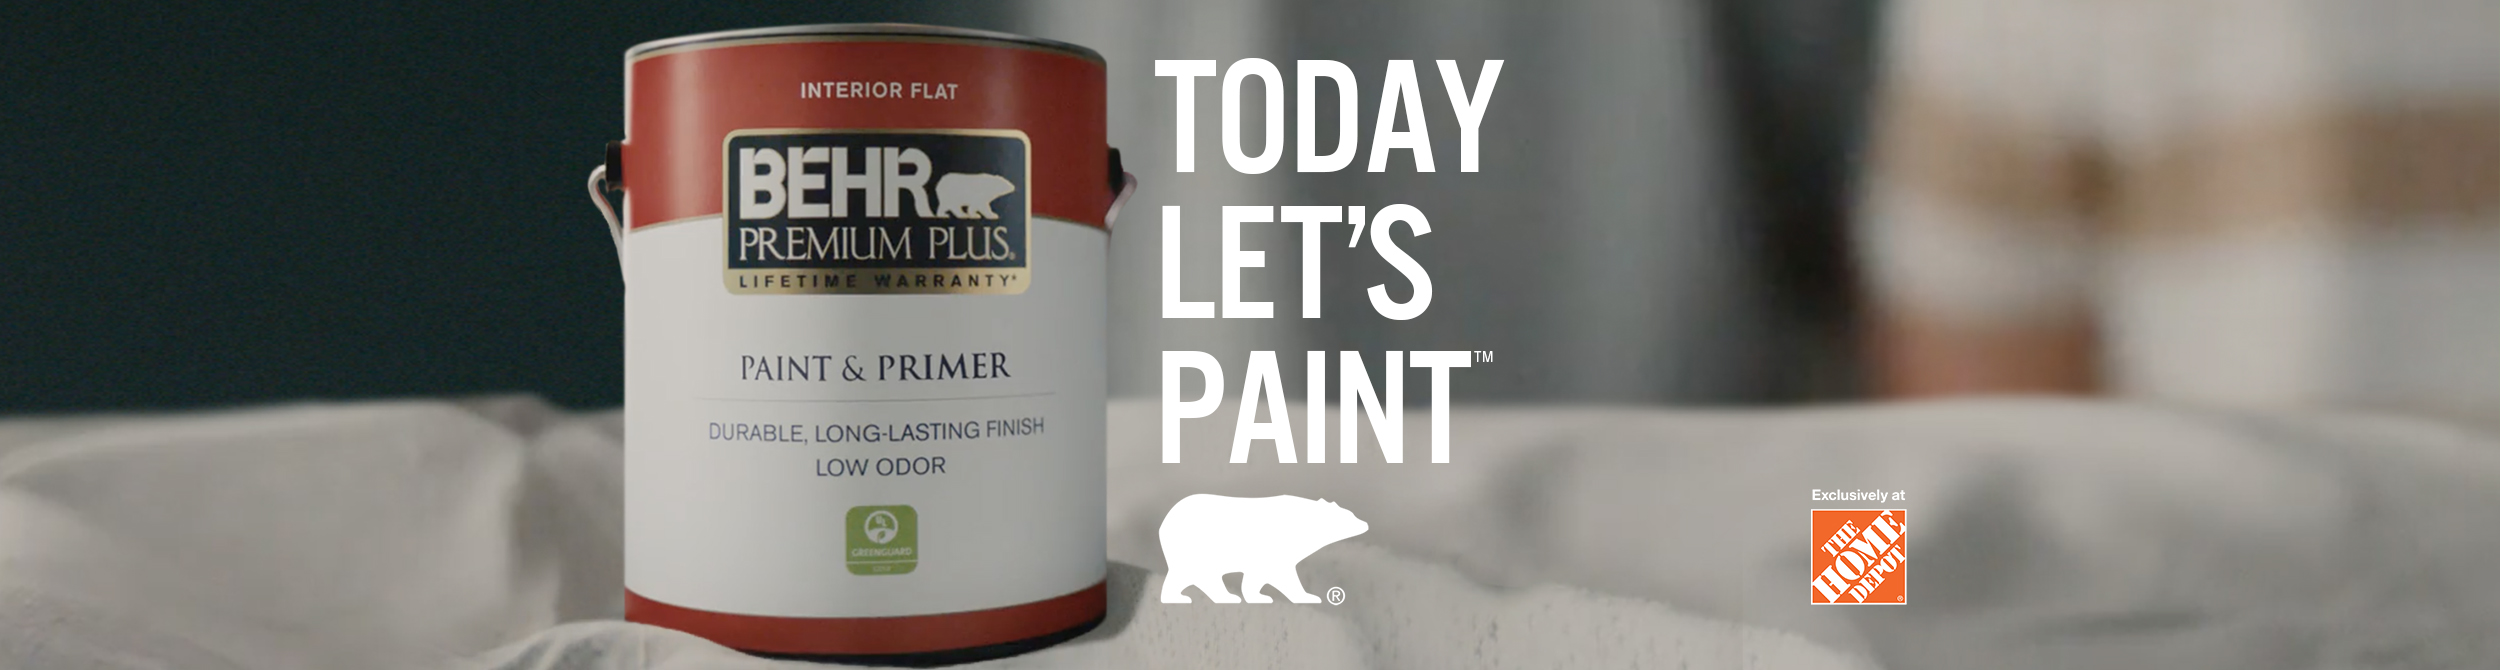 Person getting ready to paint with a can of BEHR Premium Plus Flat interior paint and the words Today Let's Paint in the foreground.